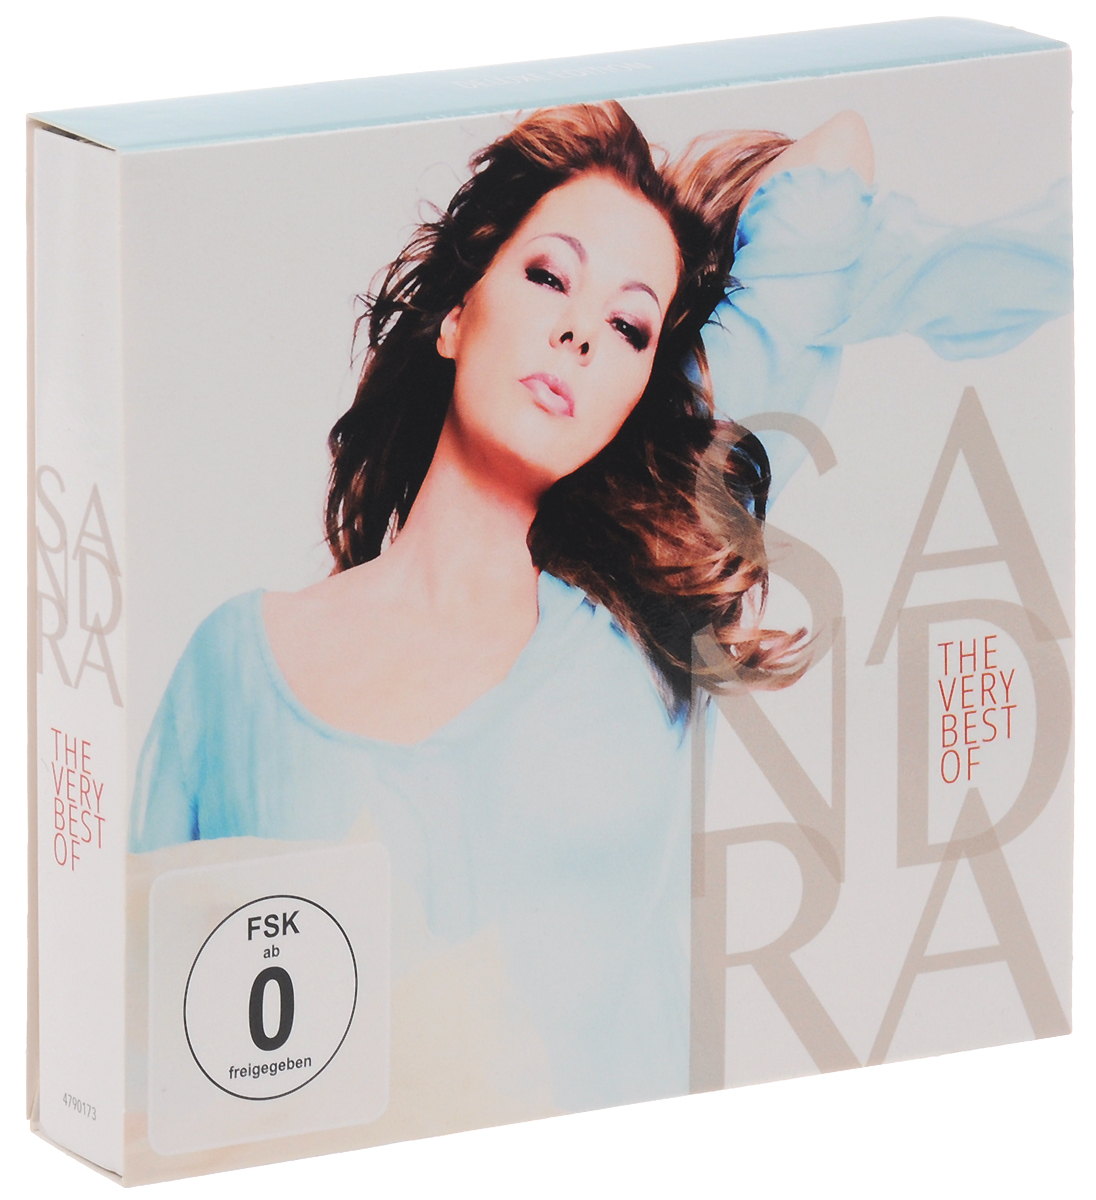 Sandra Sandra. The Very Best Of Sandra. Deluxe Edition (2 CD + DVD)